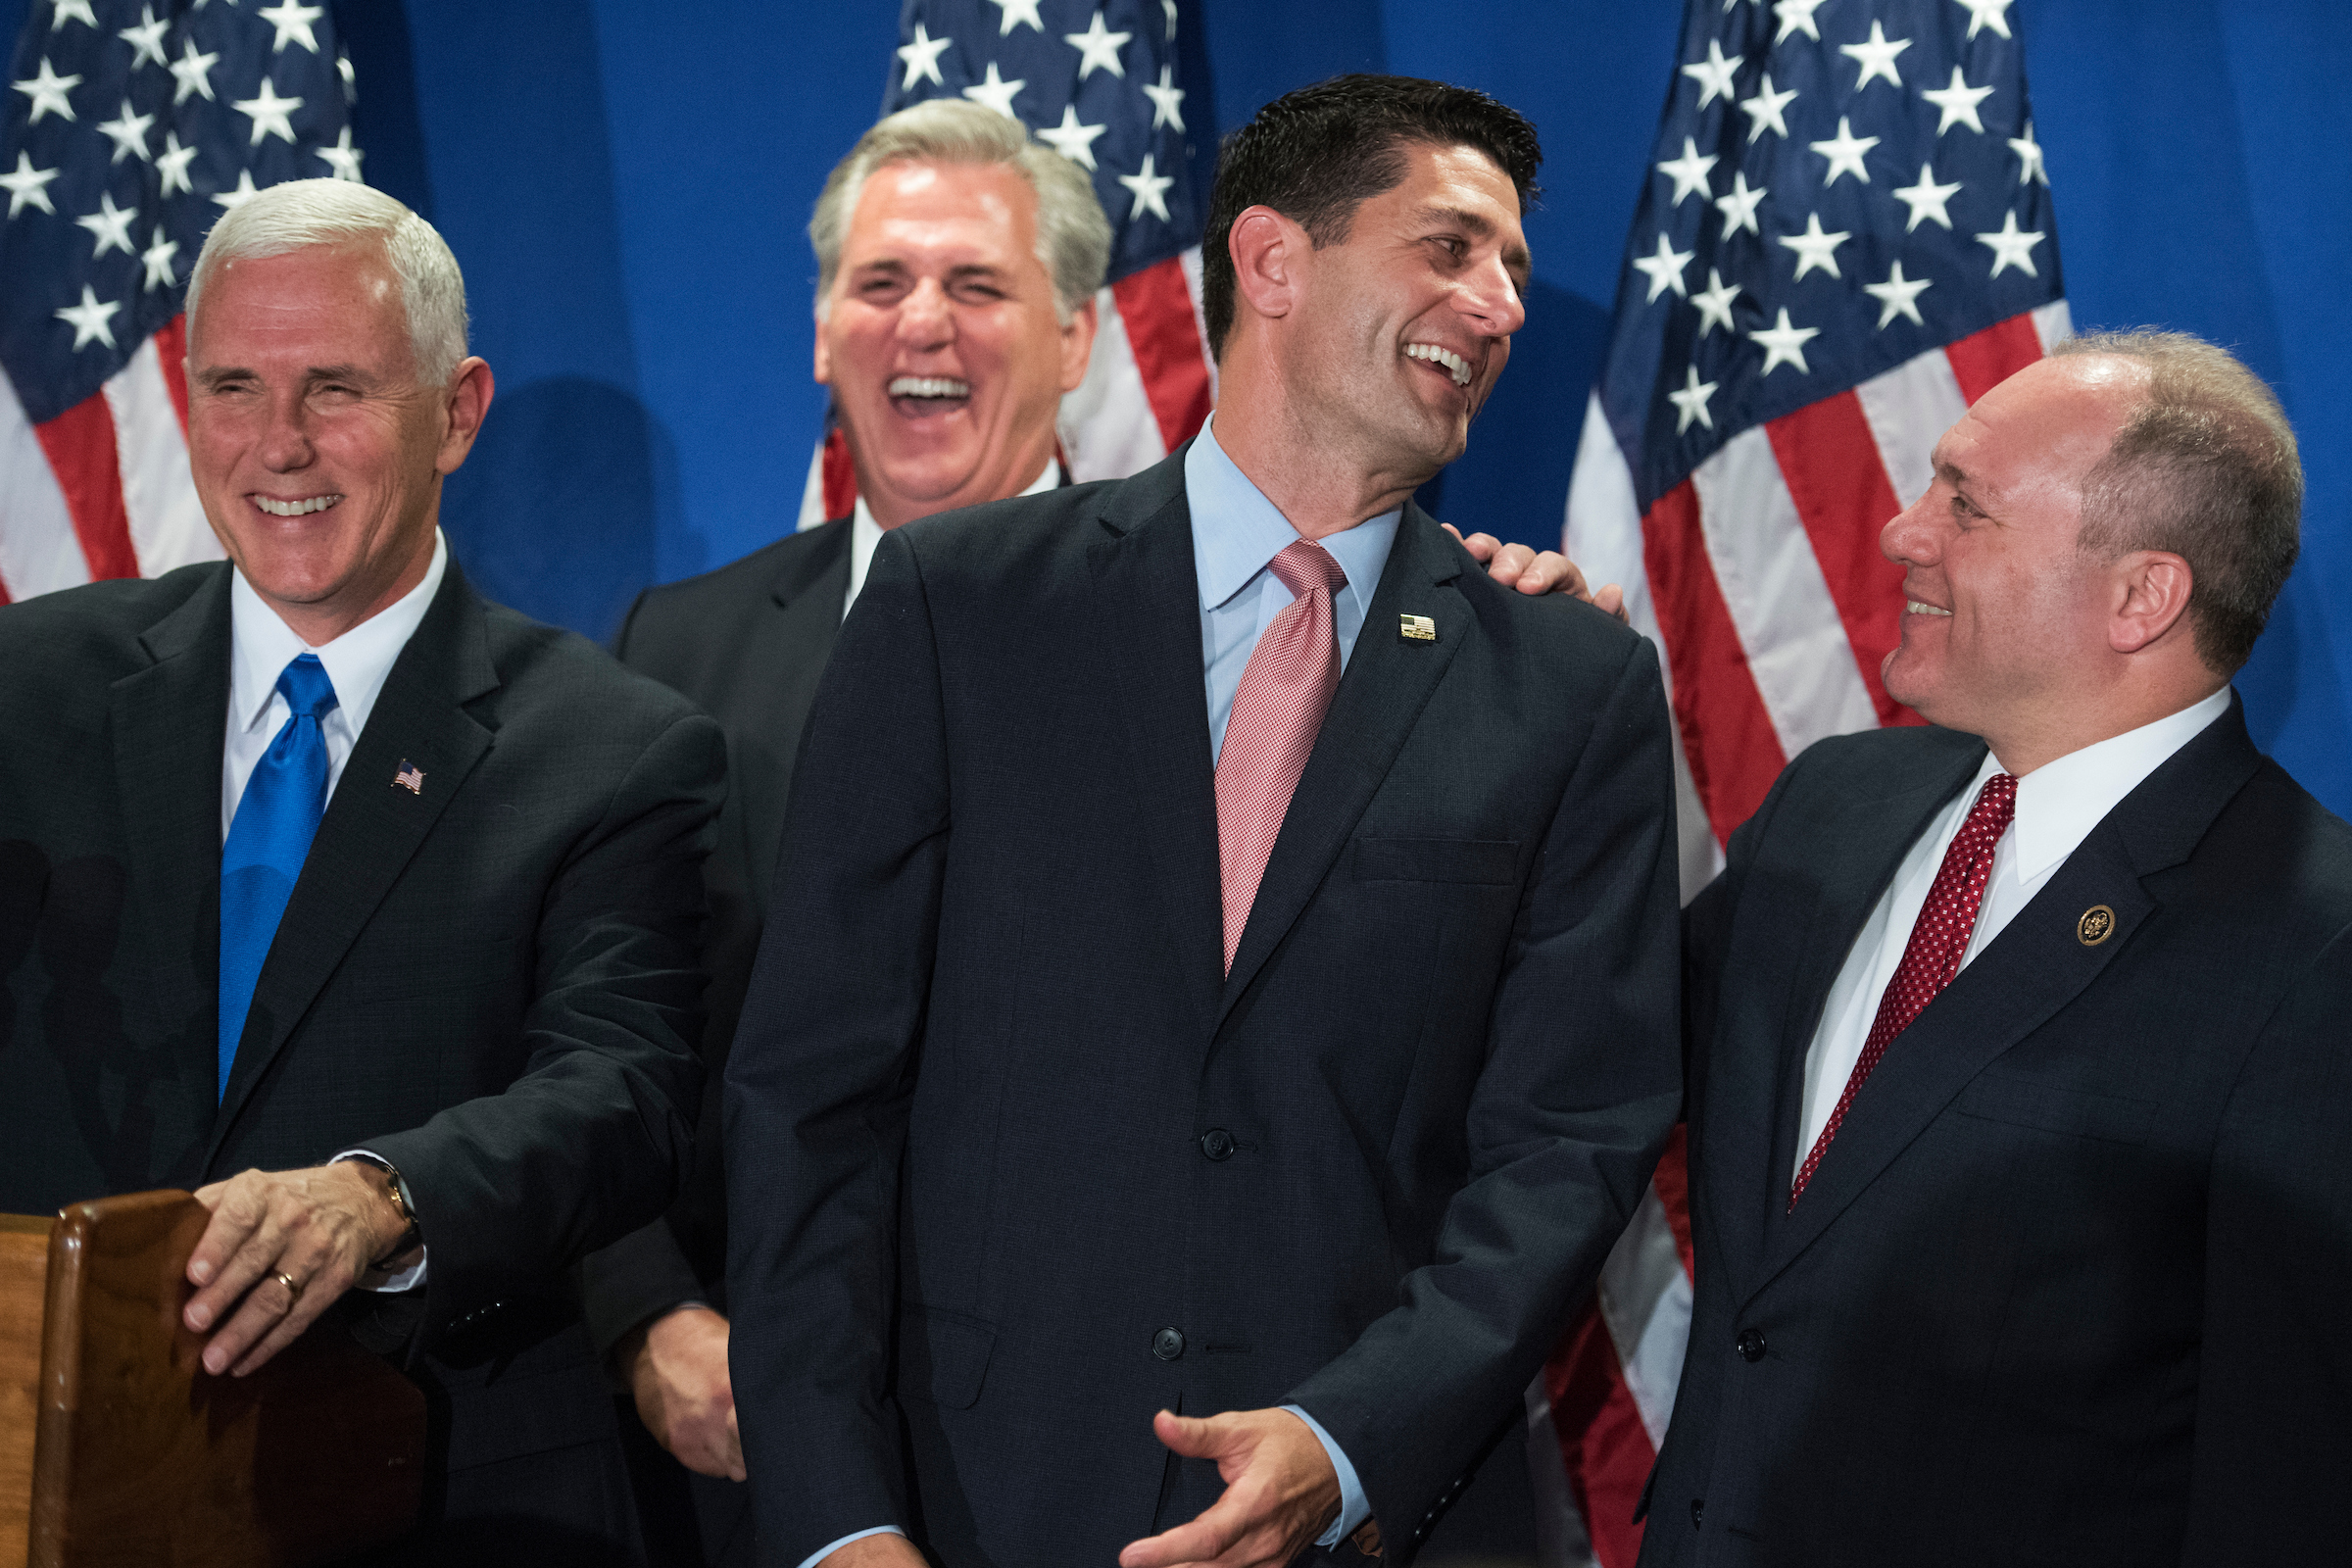 From left, Republican vice presidential nominee Mike Pence, House Majority Leader Kevin McCarthy, Speaker Paul D. Ryan and House Majority Whip Steve Scalise share a laugh with the media after a meeting of the House Republican Conference at the Republican National Committee on Tuesday, Sept. 13, 2016. (Tom Williams/CQ Roll Call)